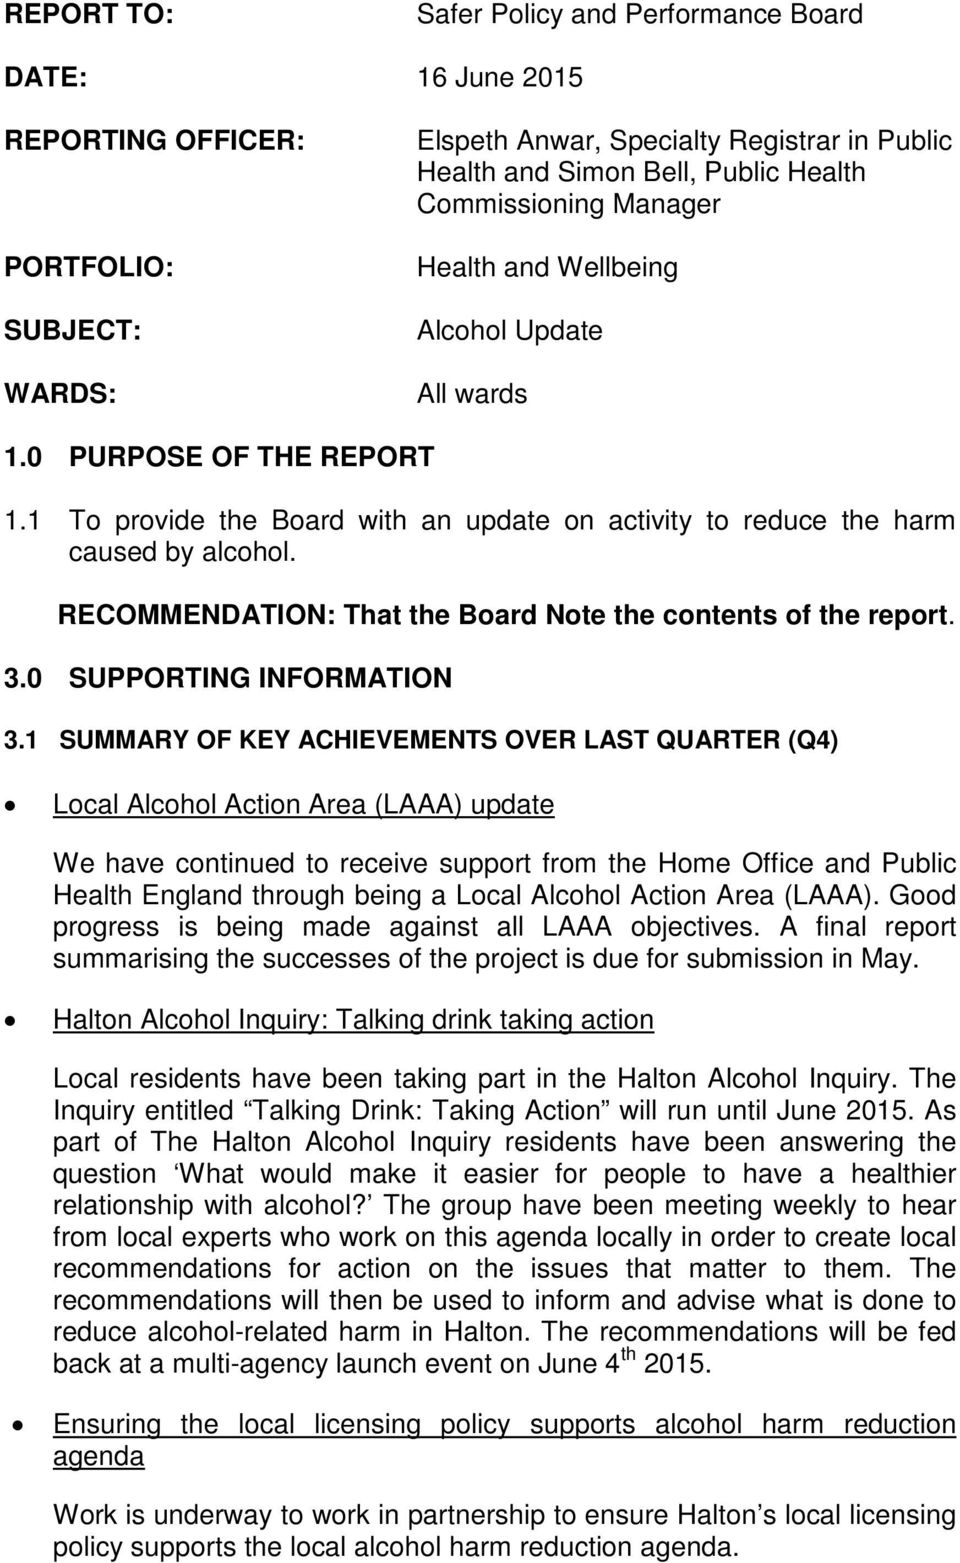 RECOMMENDATION: That the Board Note the contents of the report. 3.0 SUPPORTING INFORMATION 3.